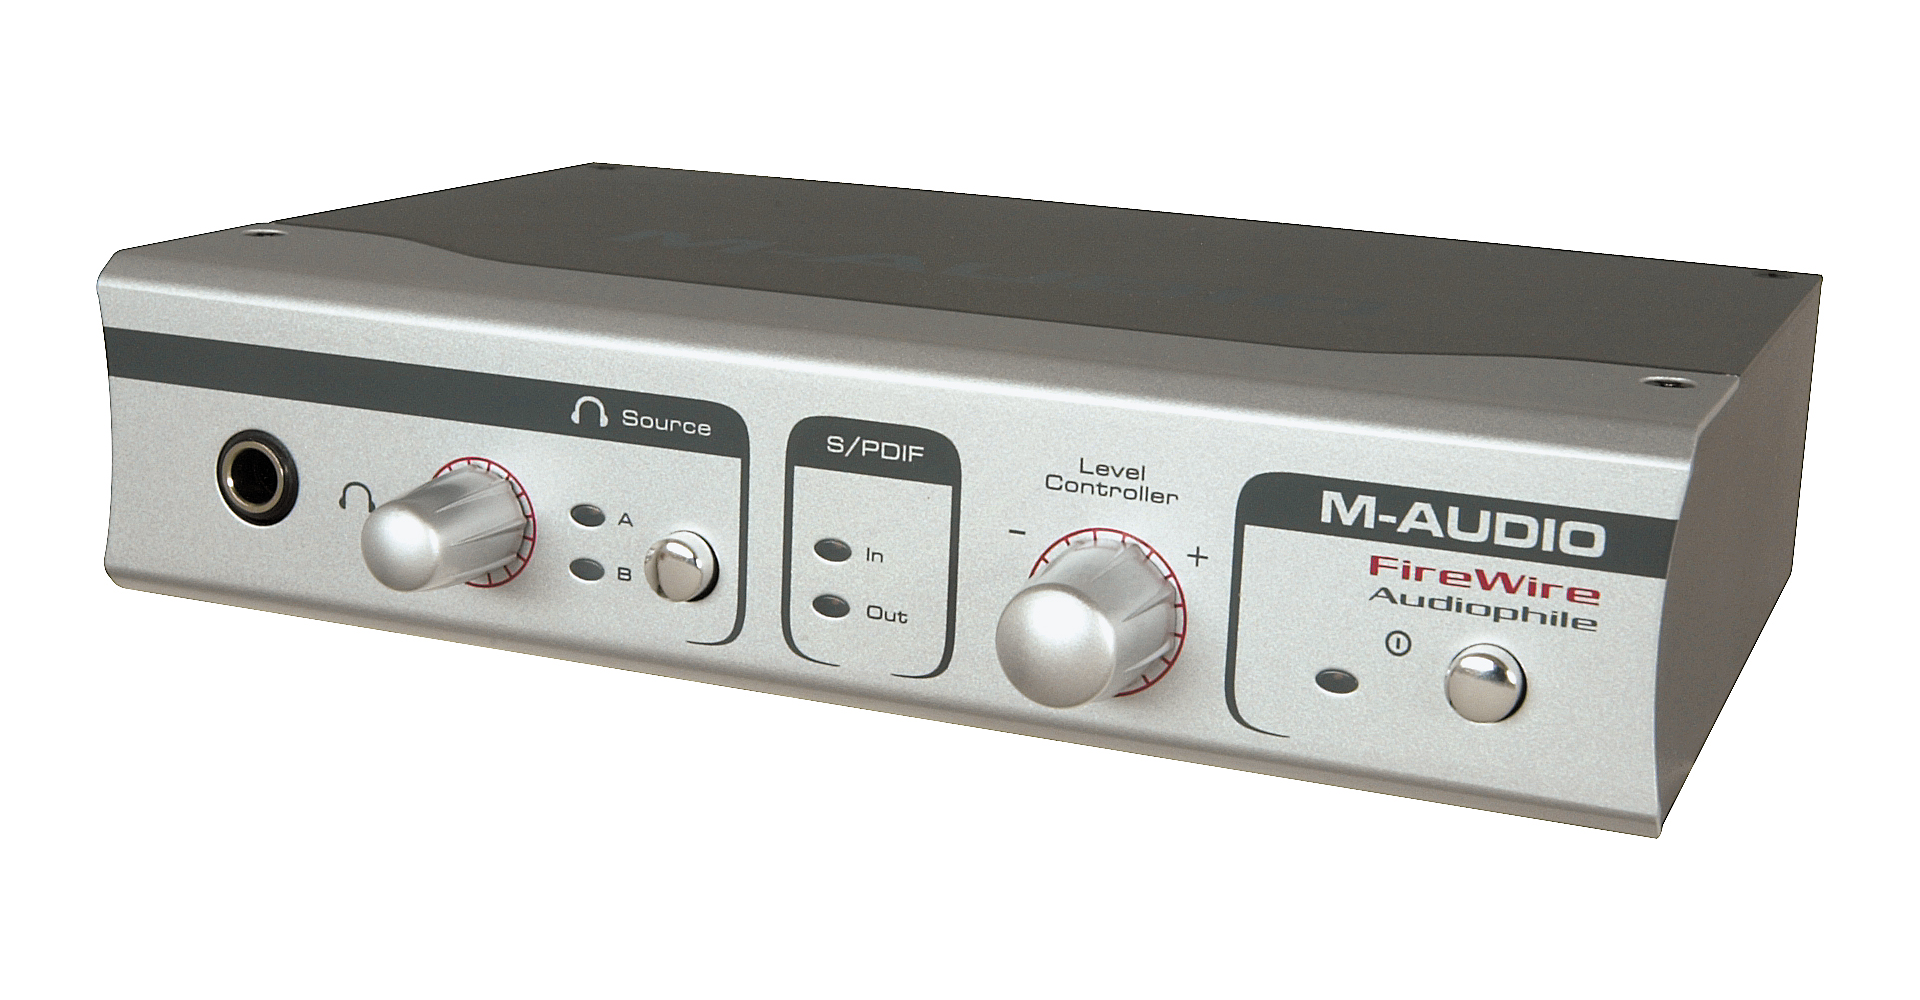 M-AUDIO - AUDIOPHILE - FW AUDIO INTERFACE